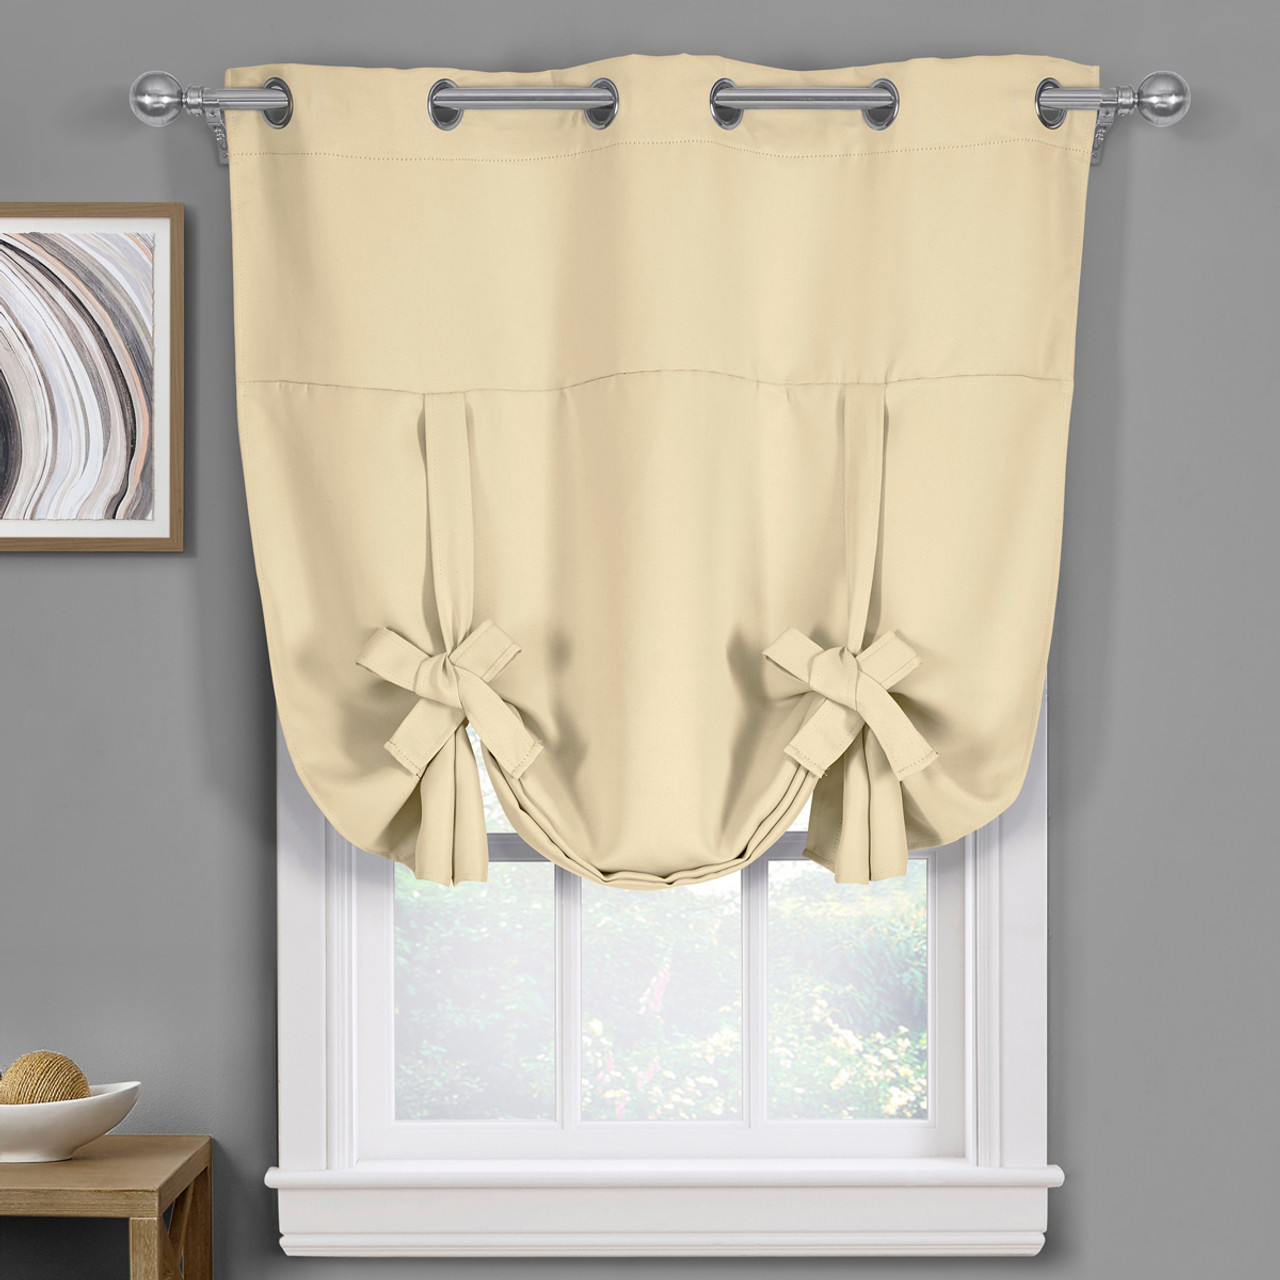 ava blackout weave curtains grommet tie up shade for small window. Black Bedroom Furniture Sets. Home Design Ideas